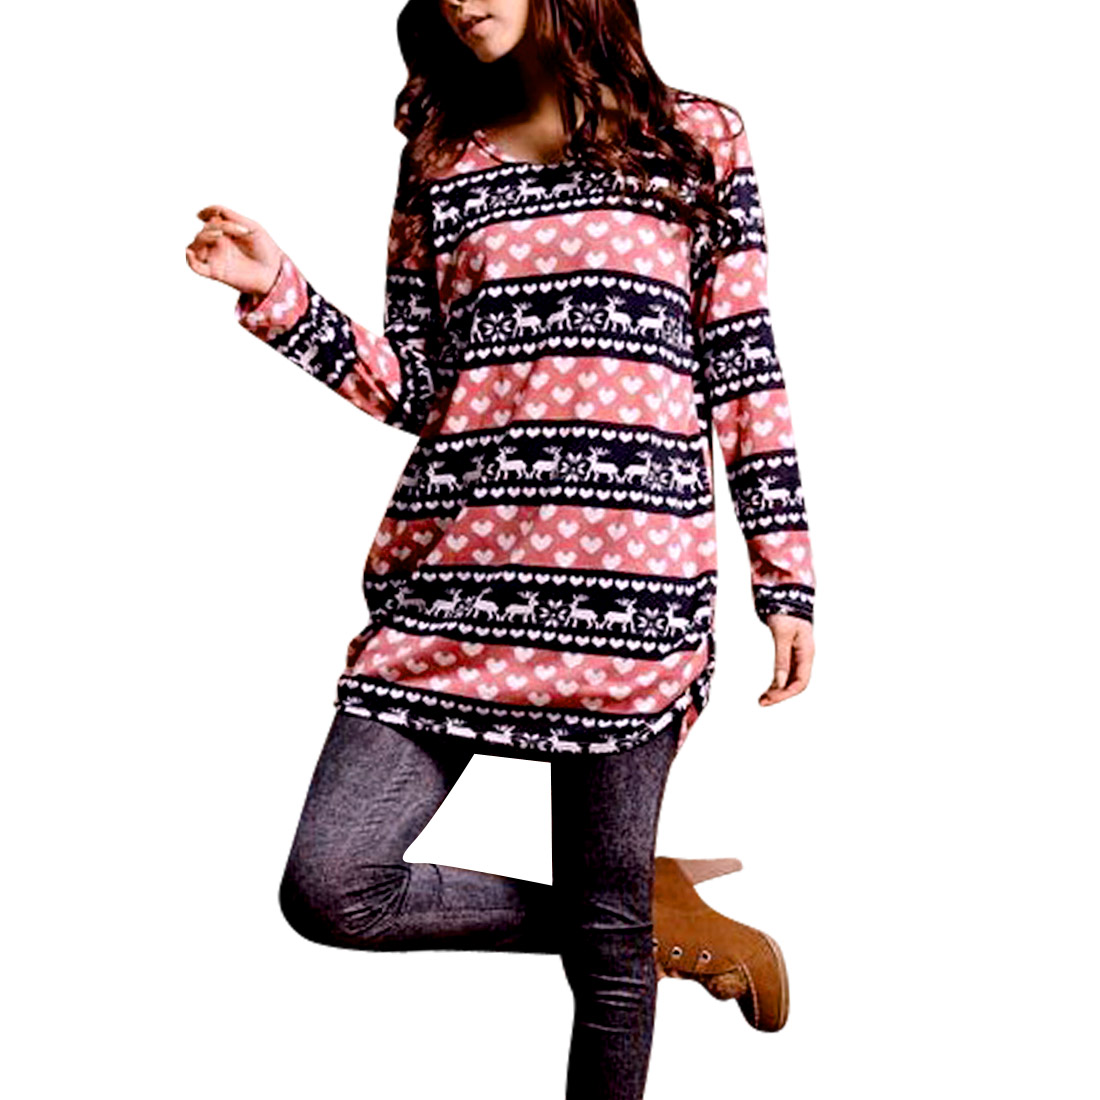 Women Stripes Hearts Deer Pattern Pink Navy Blue Knit Tunic Shirt XS